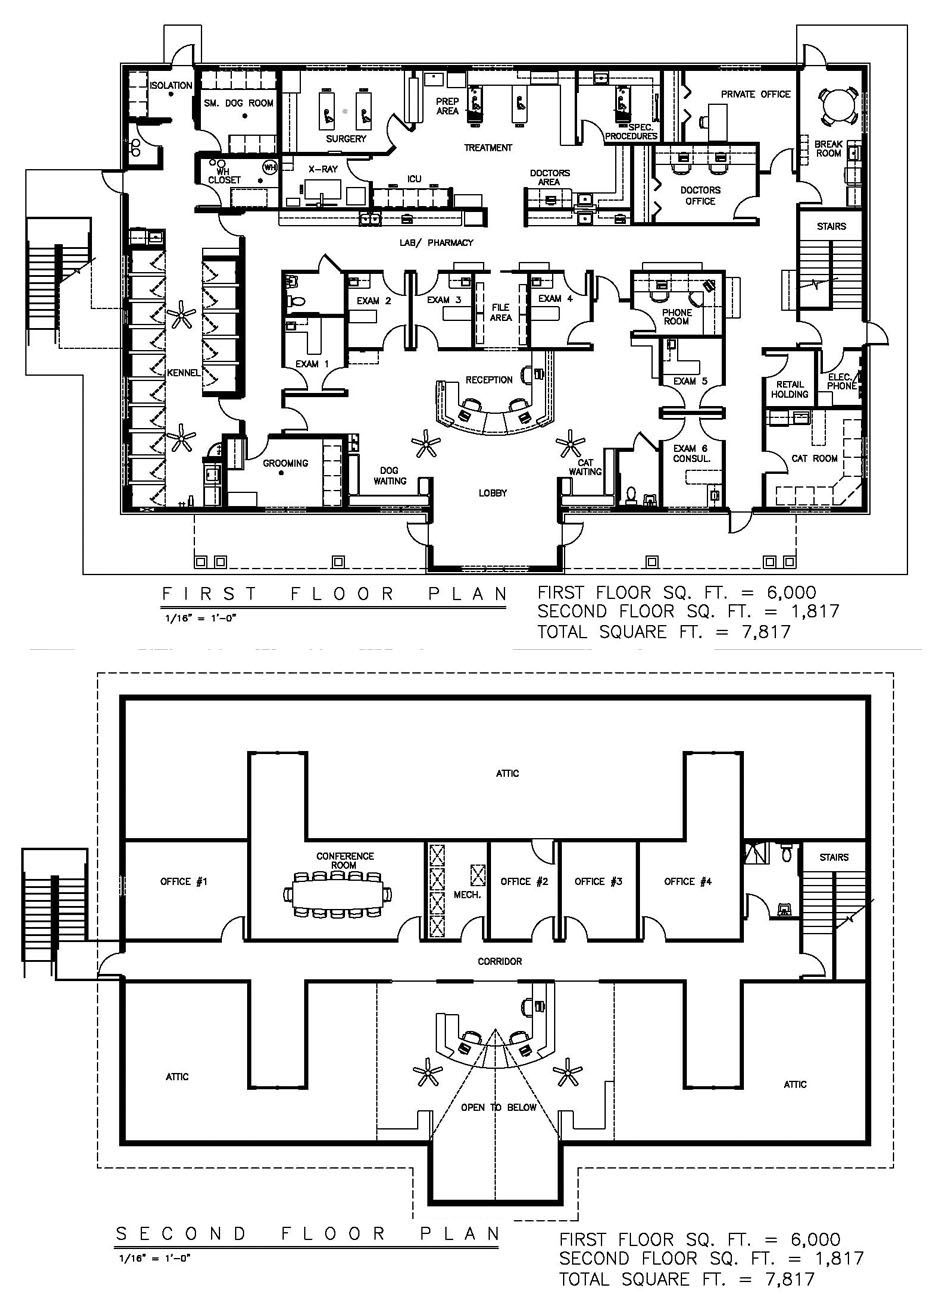 Veterinary Floor Plan Hilltop Animal Hospital Hospital Floor Plan Hospital Design Animal Hospital